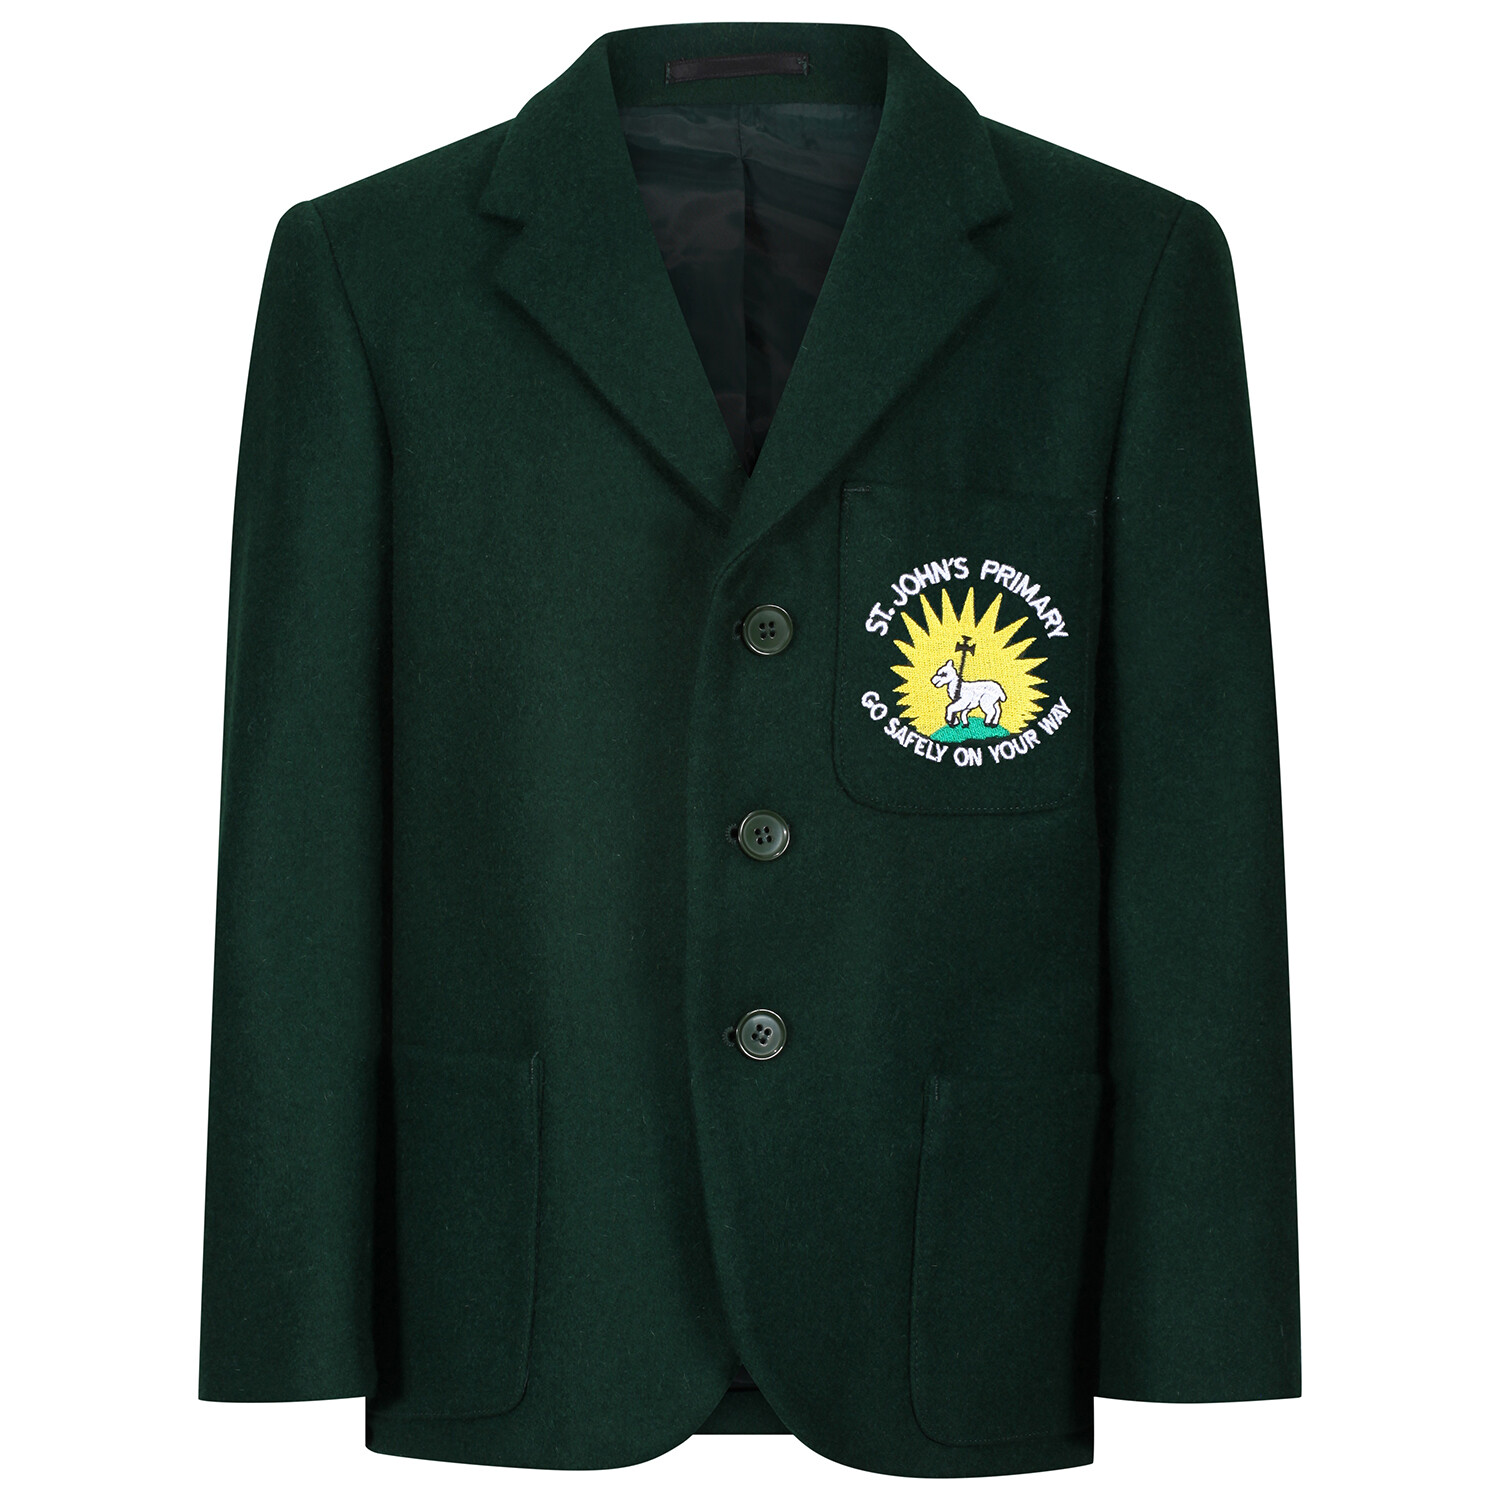 St John's Primary 'Wool' Blazer (Made-to-Order item)